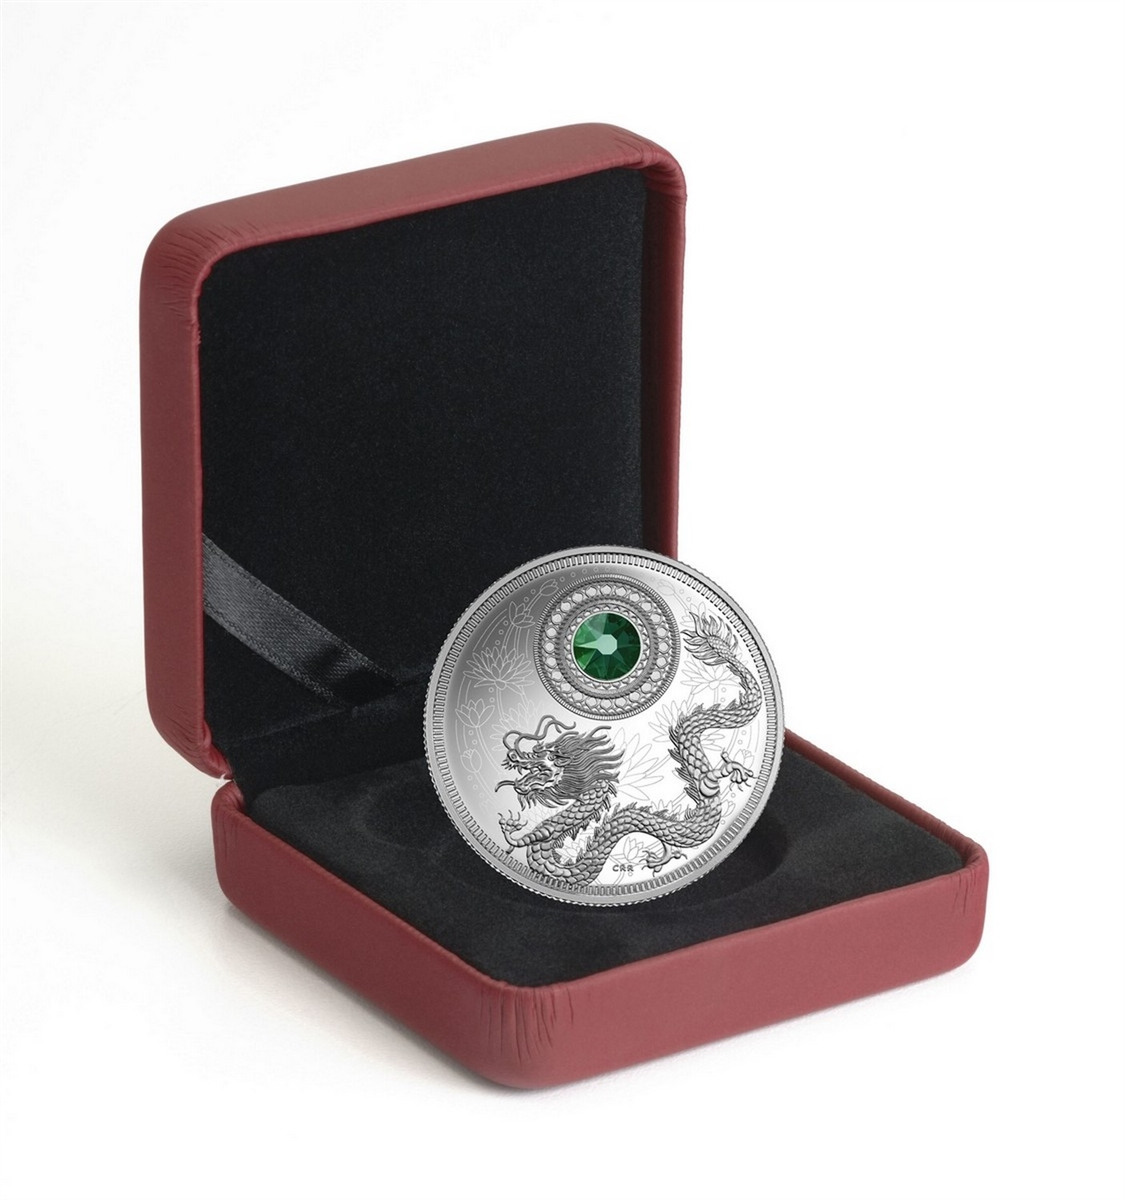 Pure Silver Coin made with Swarovski® crystal 150722 2016 Birthstones May